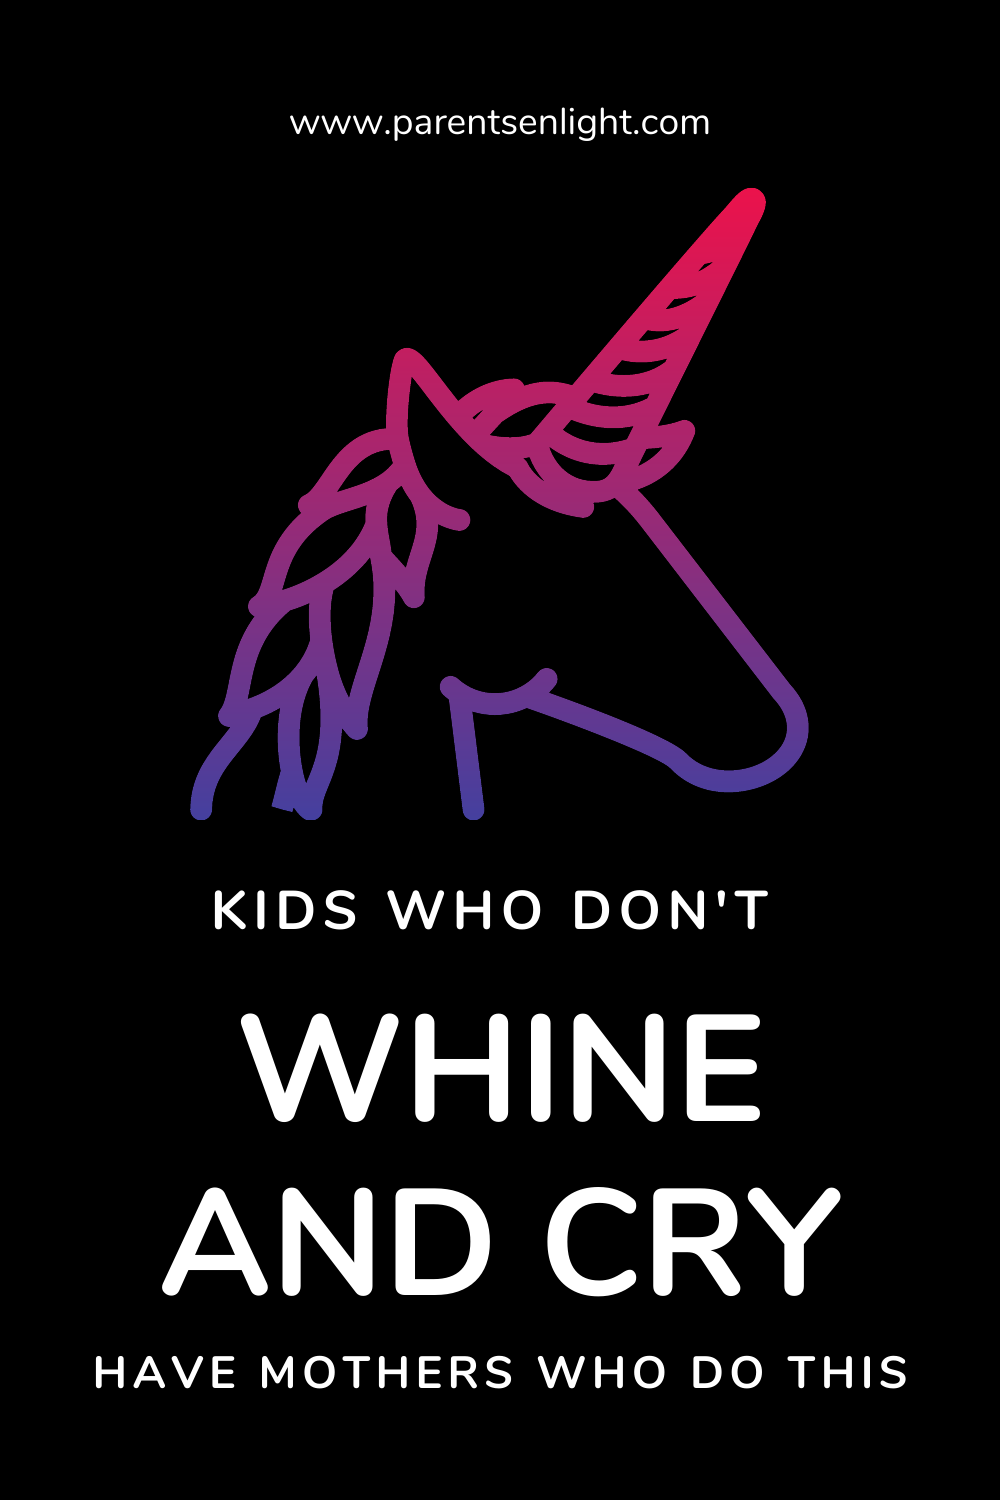 If your child is constantly whining and crying, yelling at them, getting annoyed and frustrated, bribing, and threatening will only make things worse. Here's how you can help your child heal from whining and crying #positiveparenting #constantlycryingchild #howtohelpkidsstopwhining #mindfulparenting #motherhood #tantrums #angermanagement